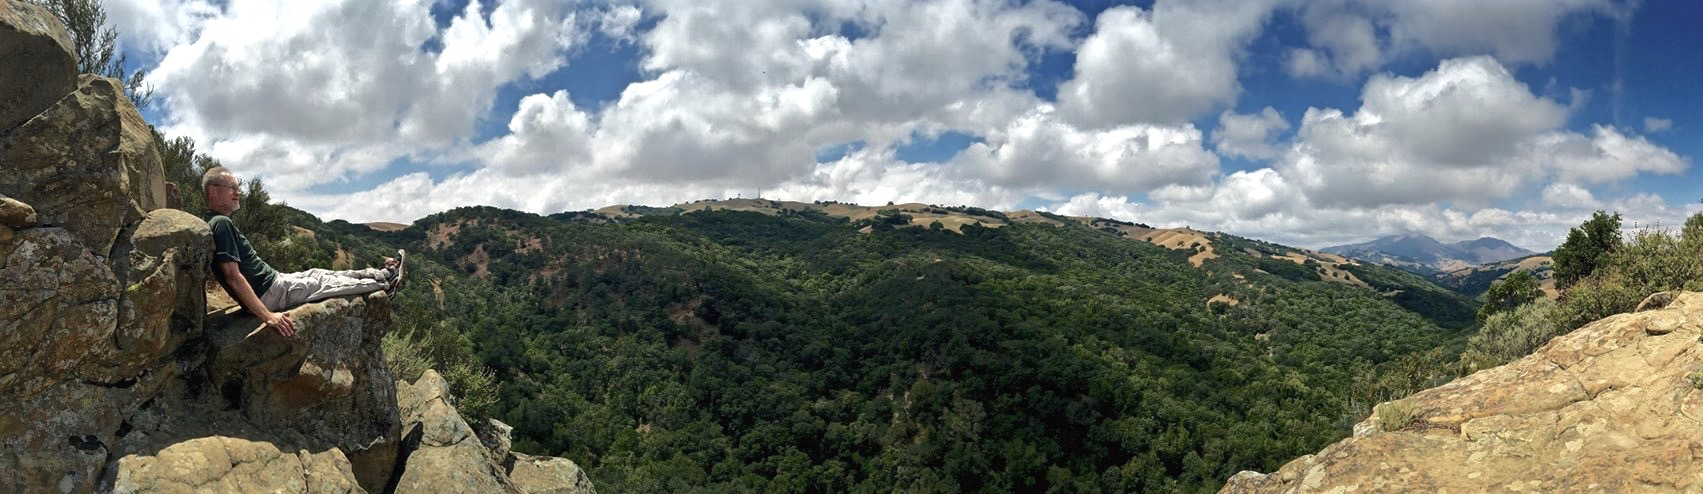 The panorama from my rock recliner along the Prairie Falcon Trail. Photo by Chris Erickson.